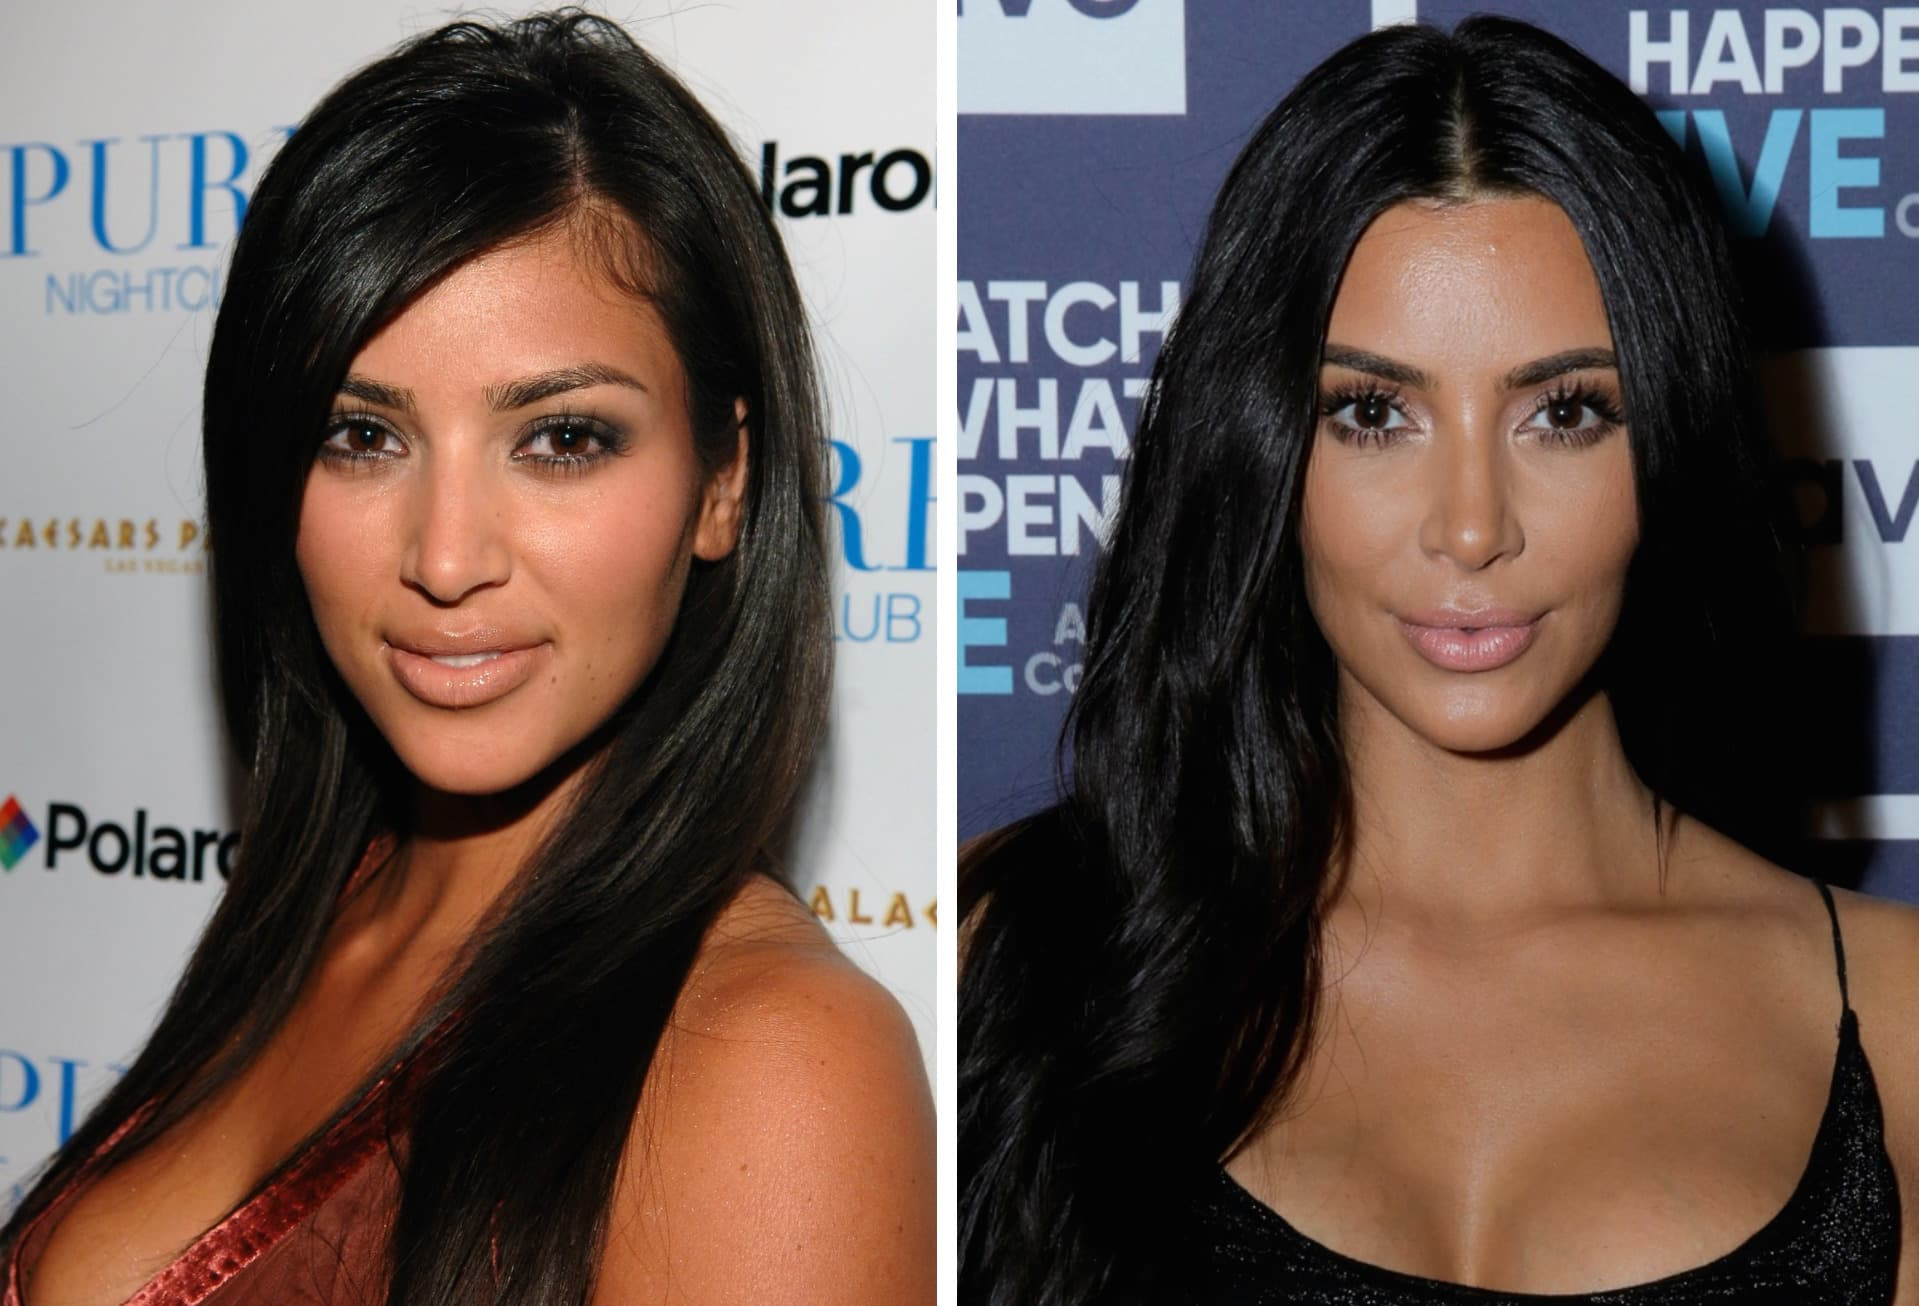 Kardashian Sisters Before And After Plastic Surgery 1